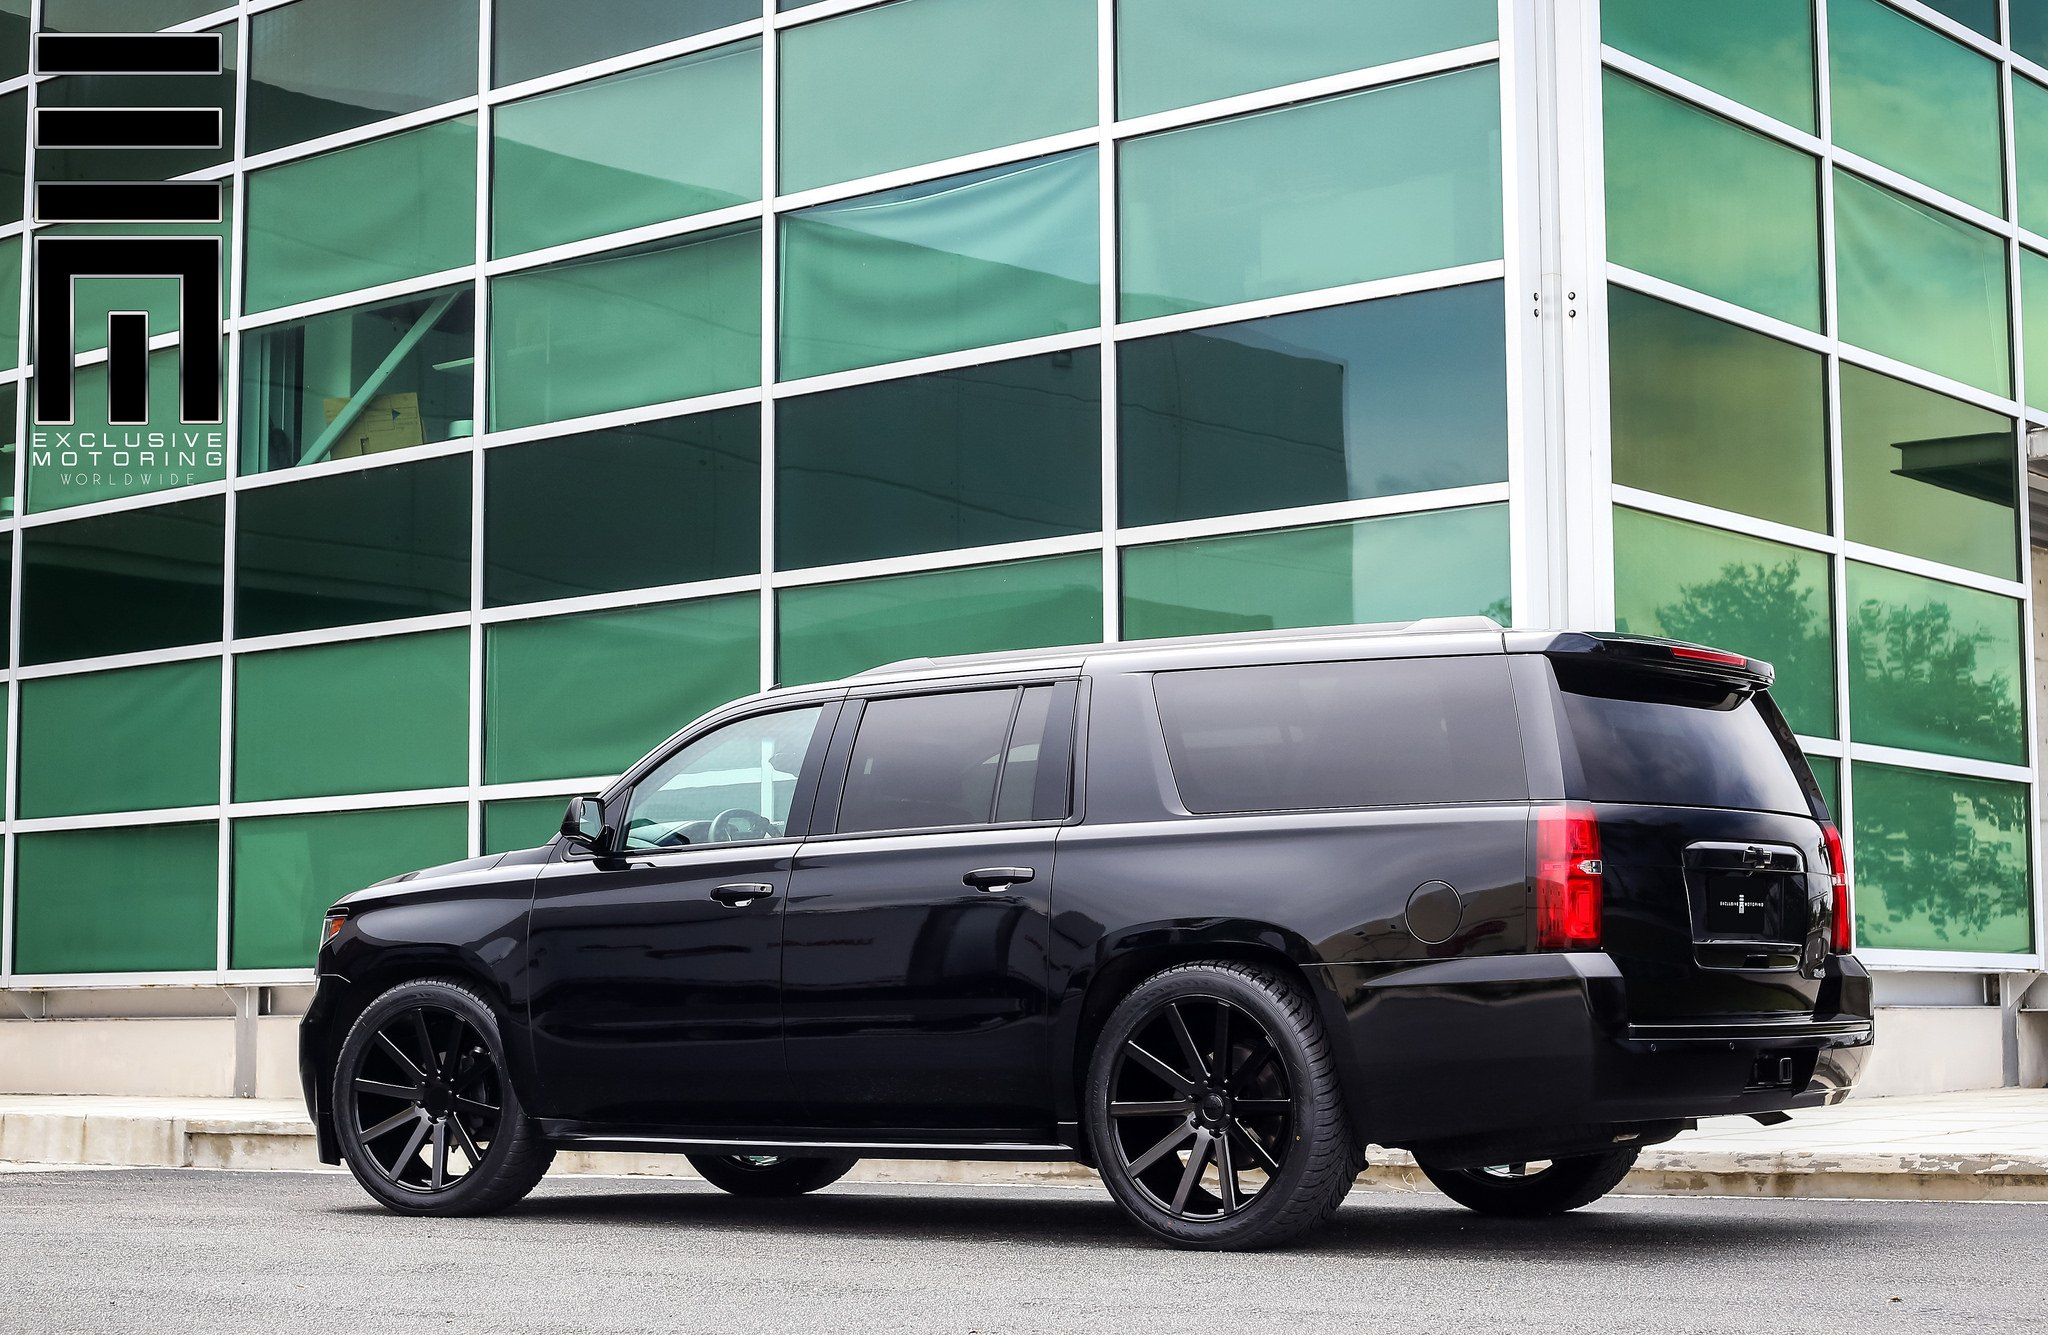 all black chevy suburban on custom wheels by exclusive motoring gallery. Black Bedroom Furniture Sets. Home Design Ideas